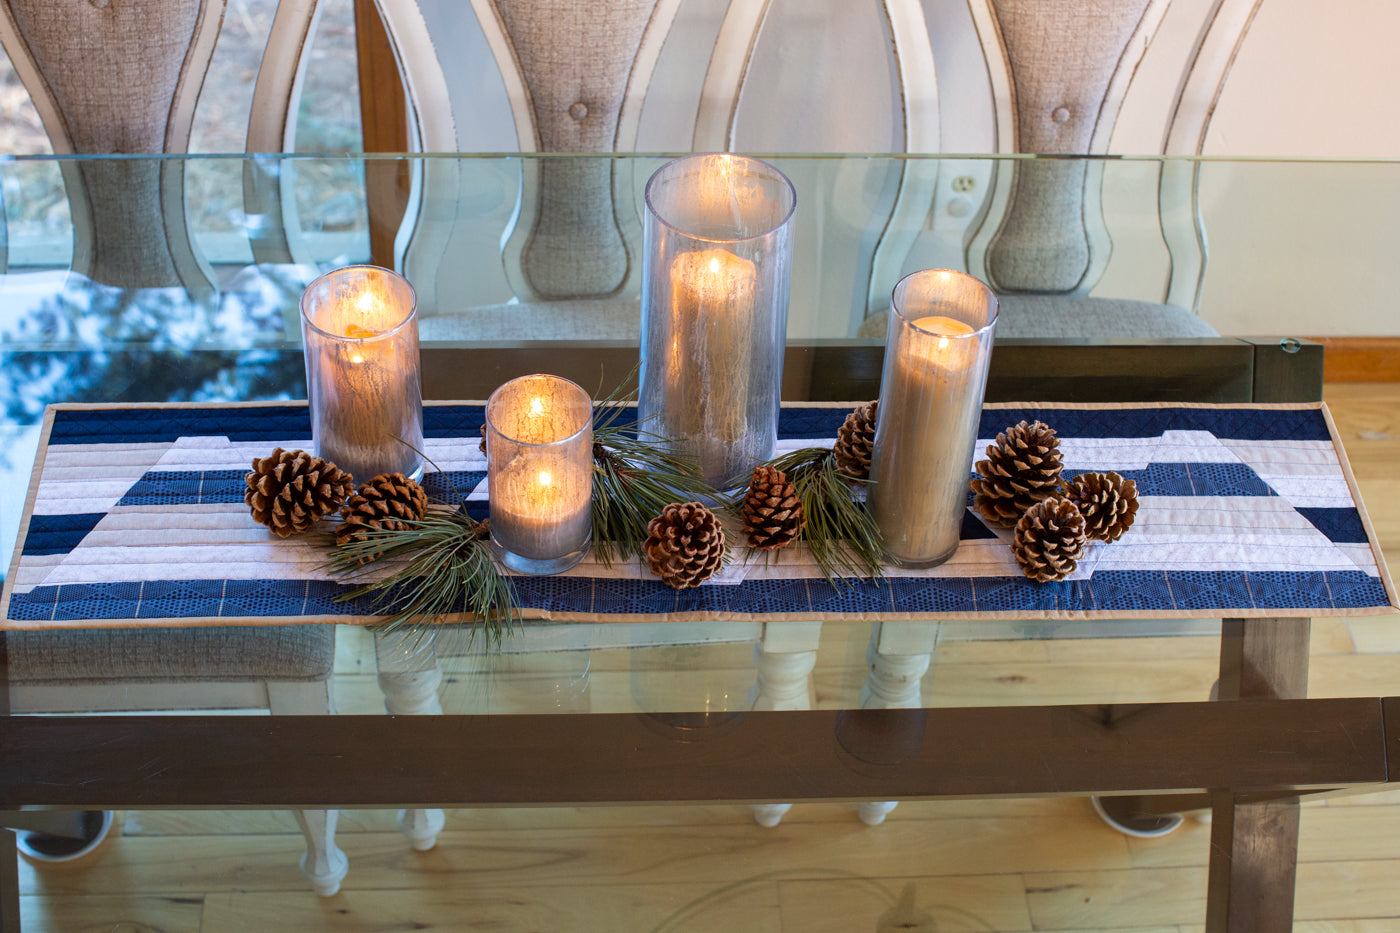 Photograph taken from above the glass kitchen table to showcase the table runner.  On top of the table runner sits lit candles, in tall candle holders, with pinecones and pine needle bunches intertwined.